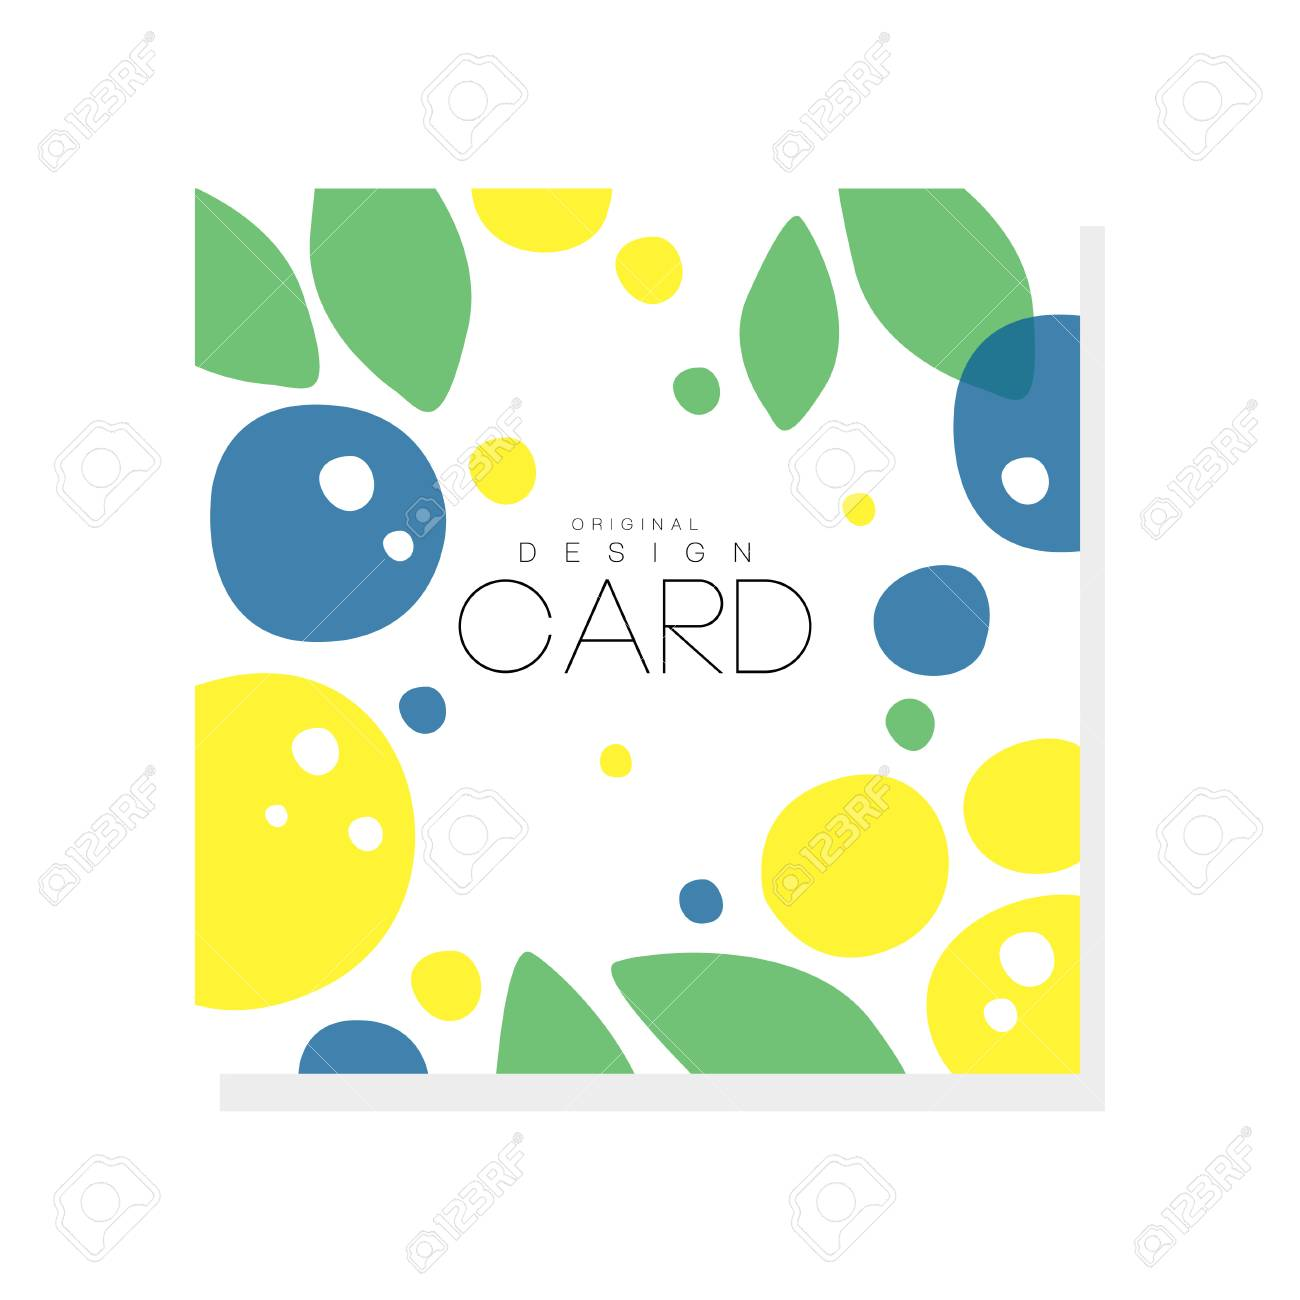 Bright summer card template with plums, lemons and green leaves. Abstract colorful fruits design for invitation, poster or product emblem. Creative vector illustration isolated on white background. - 94314520